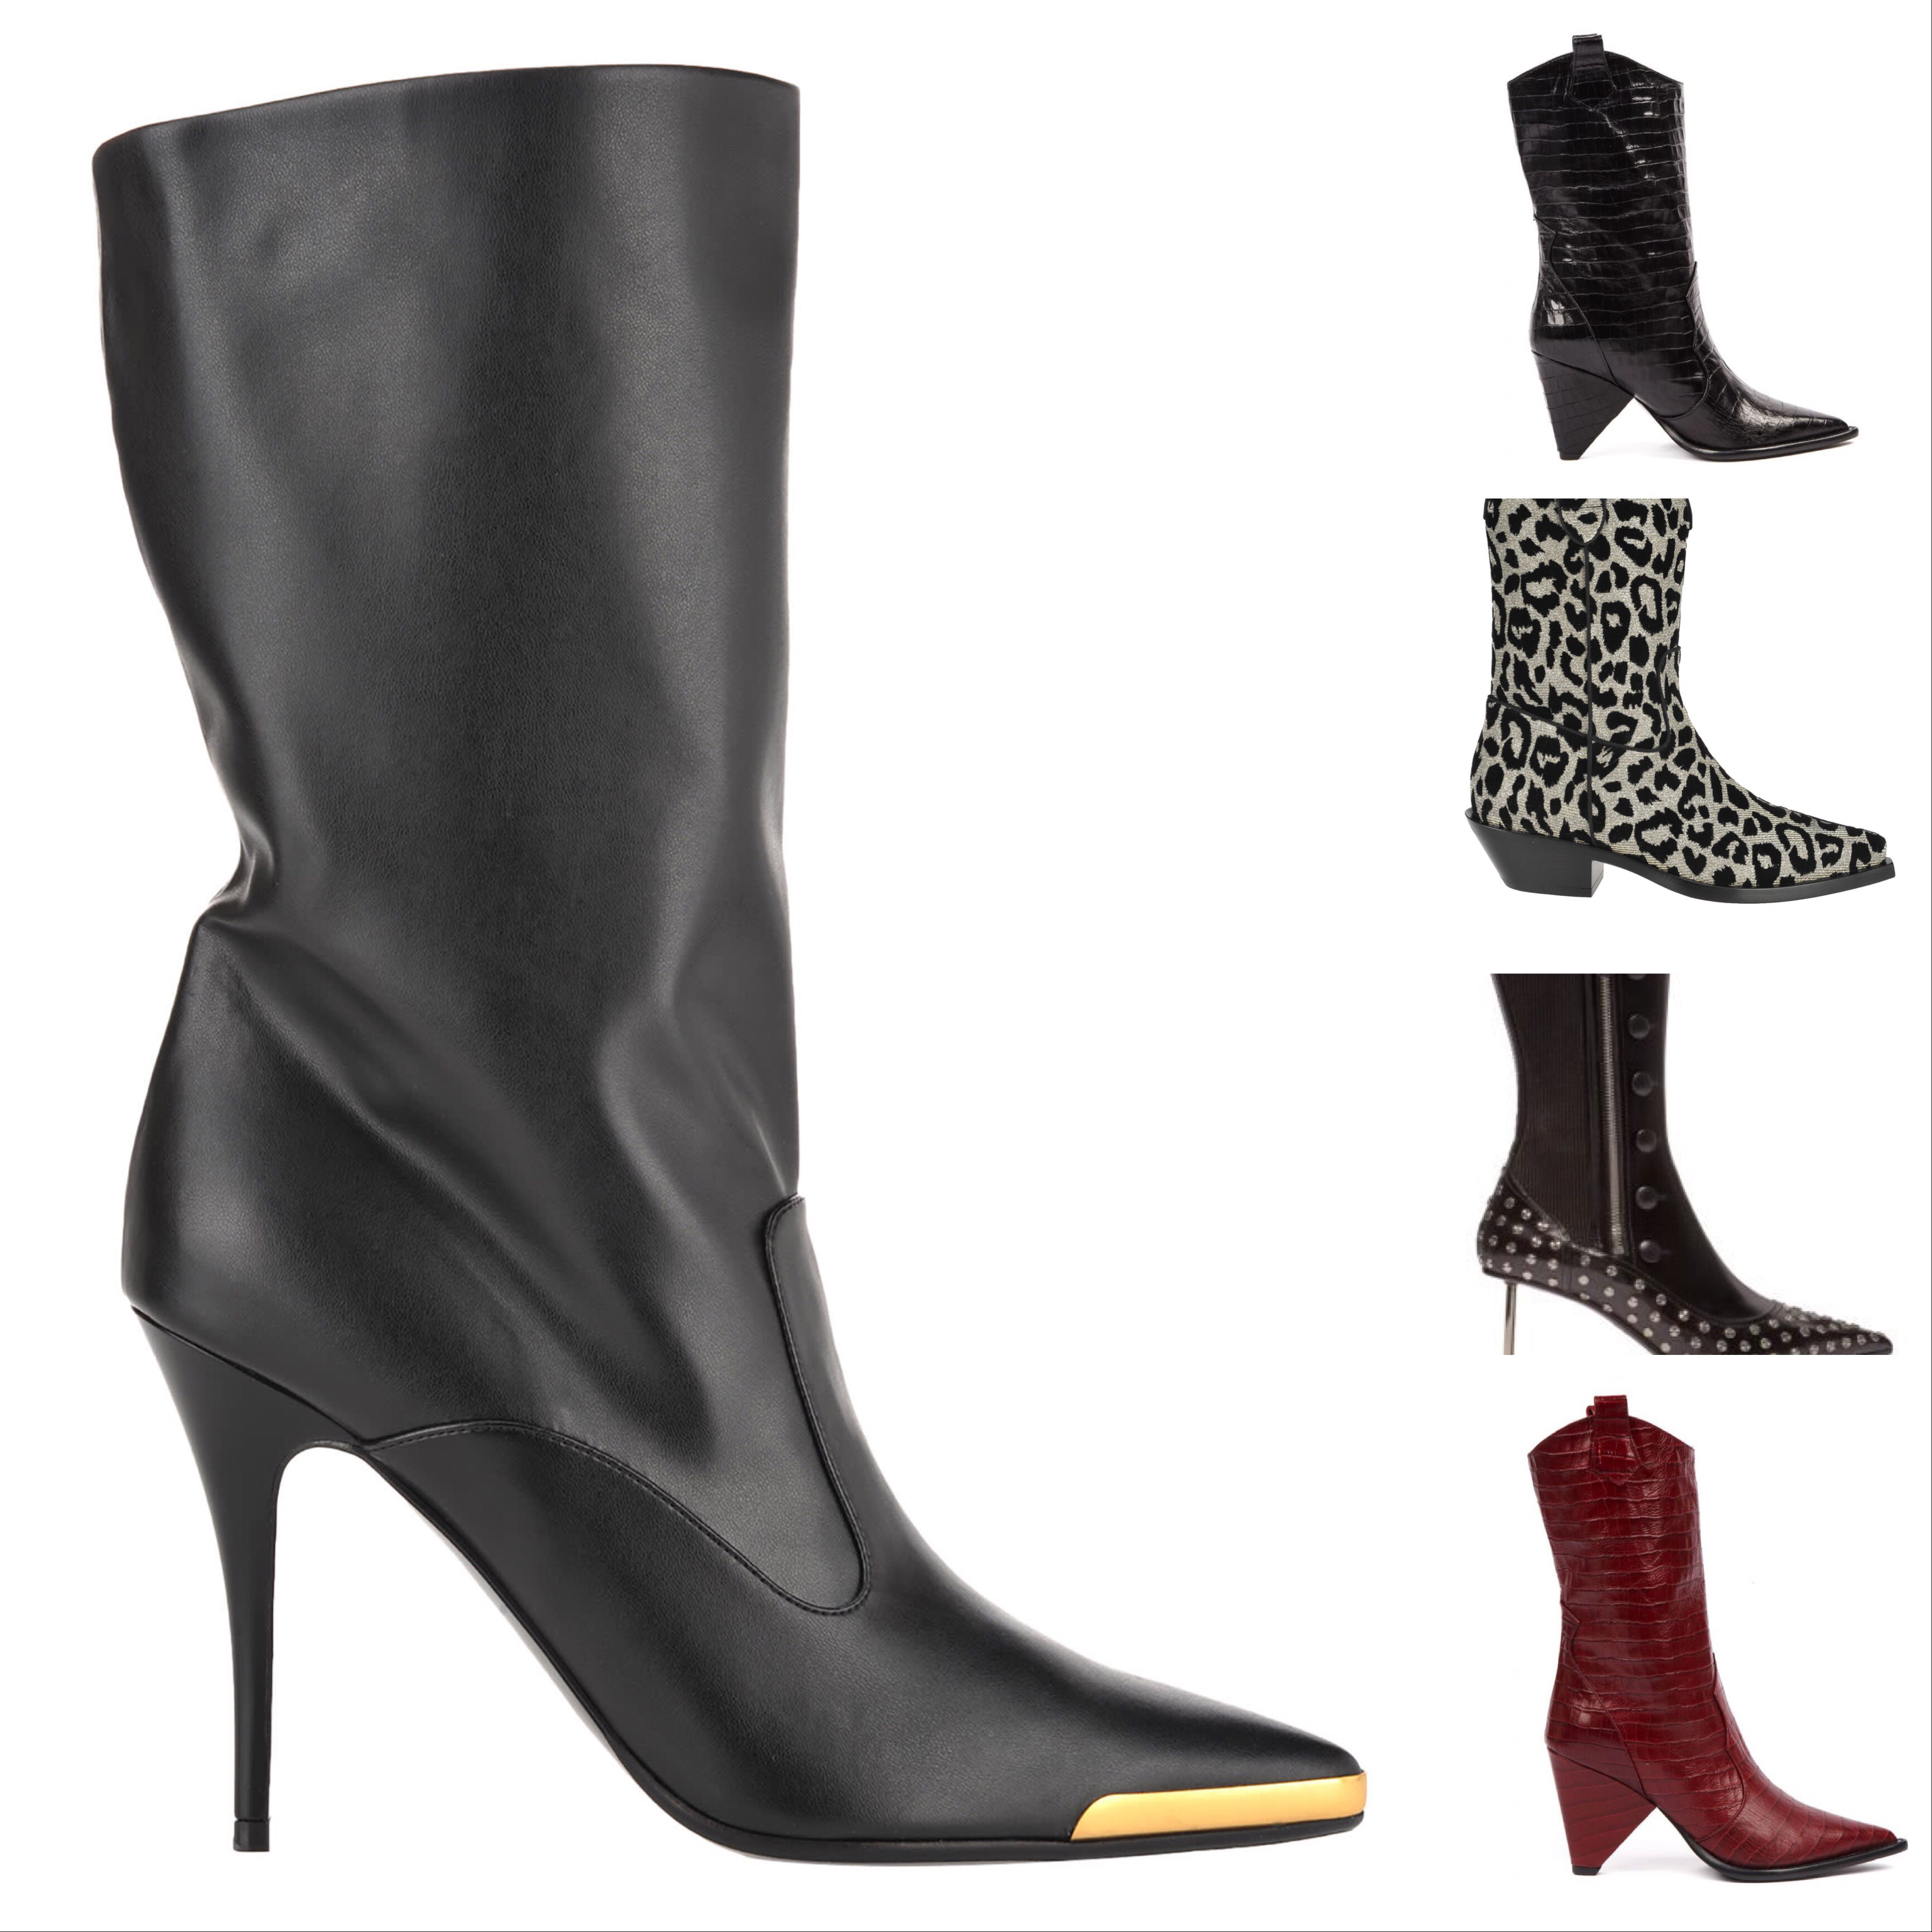 Luxury Mid Calf Boot Guide